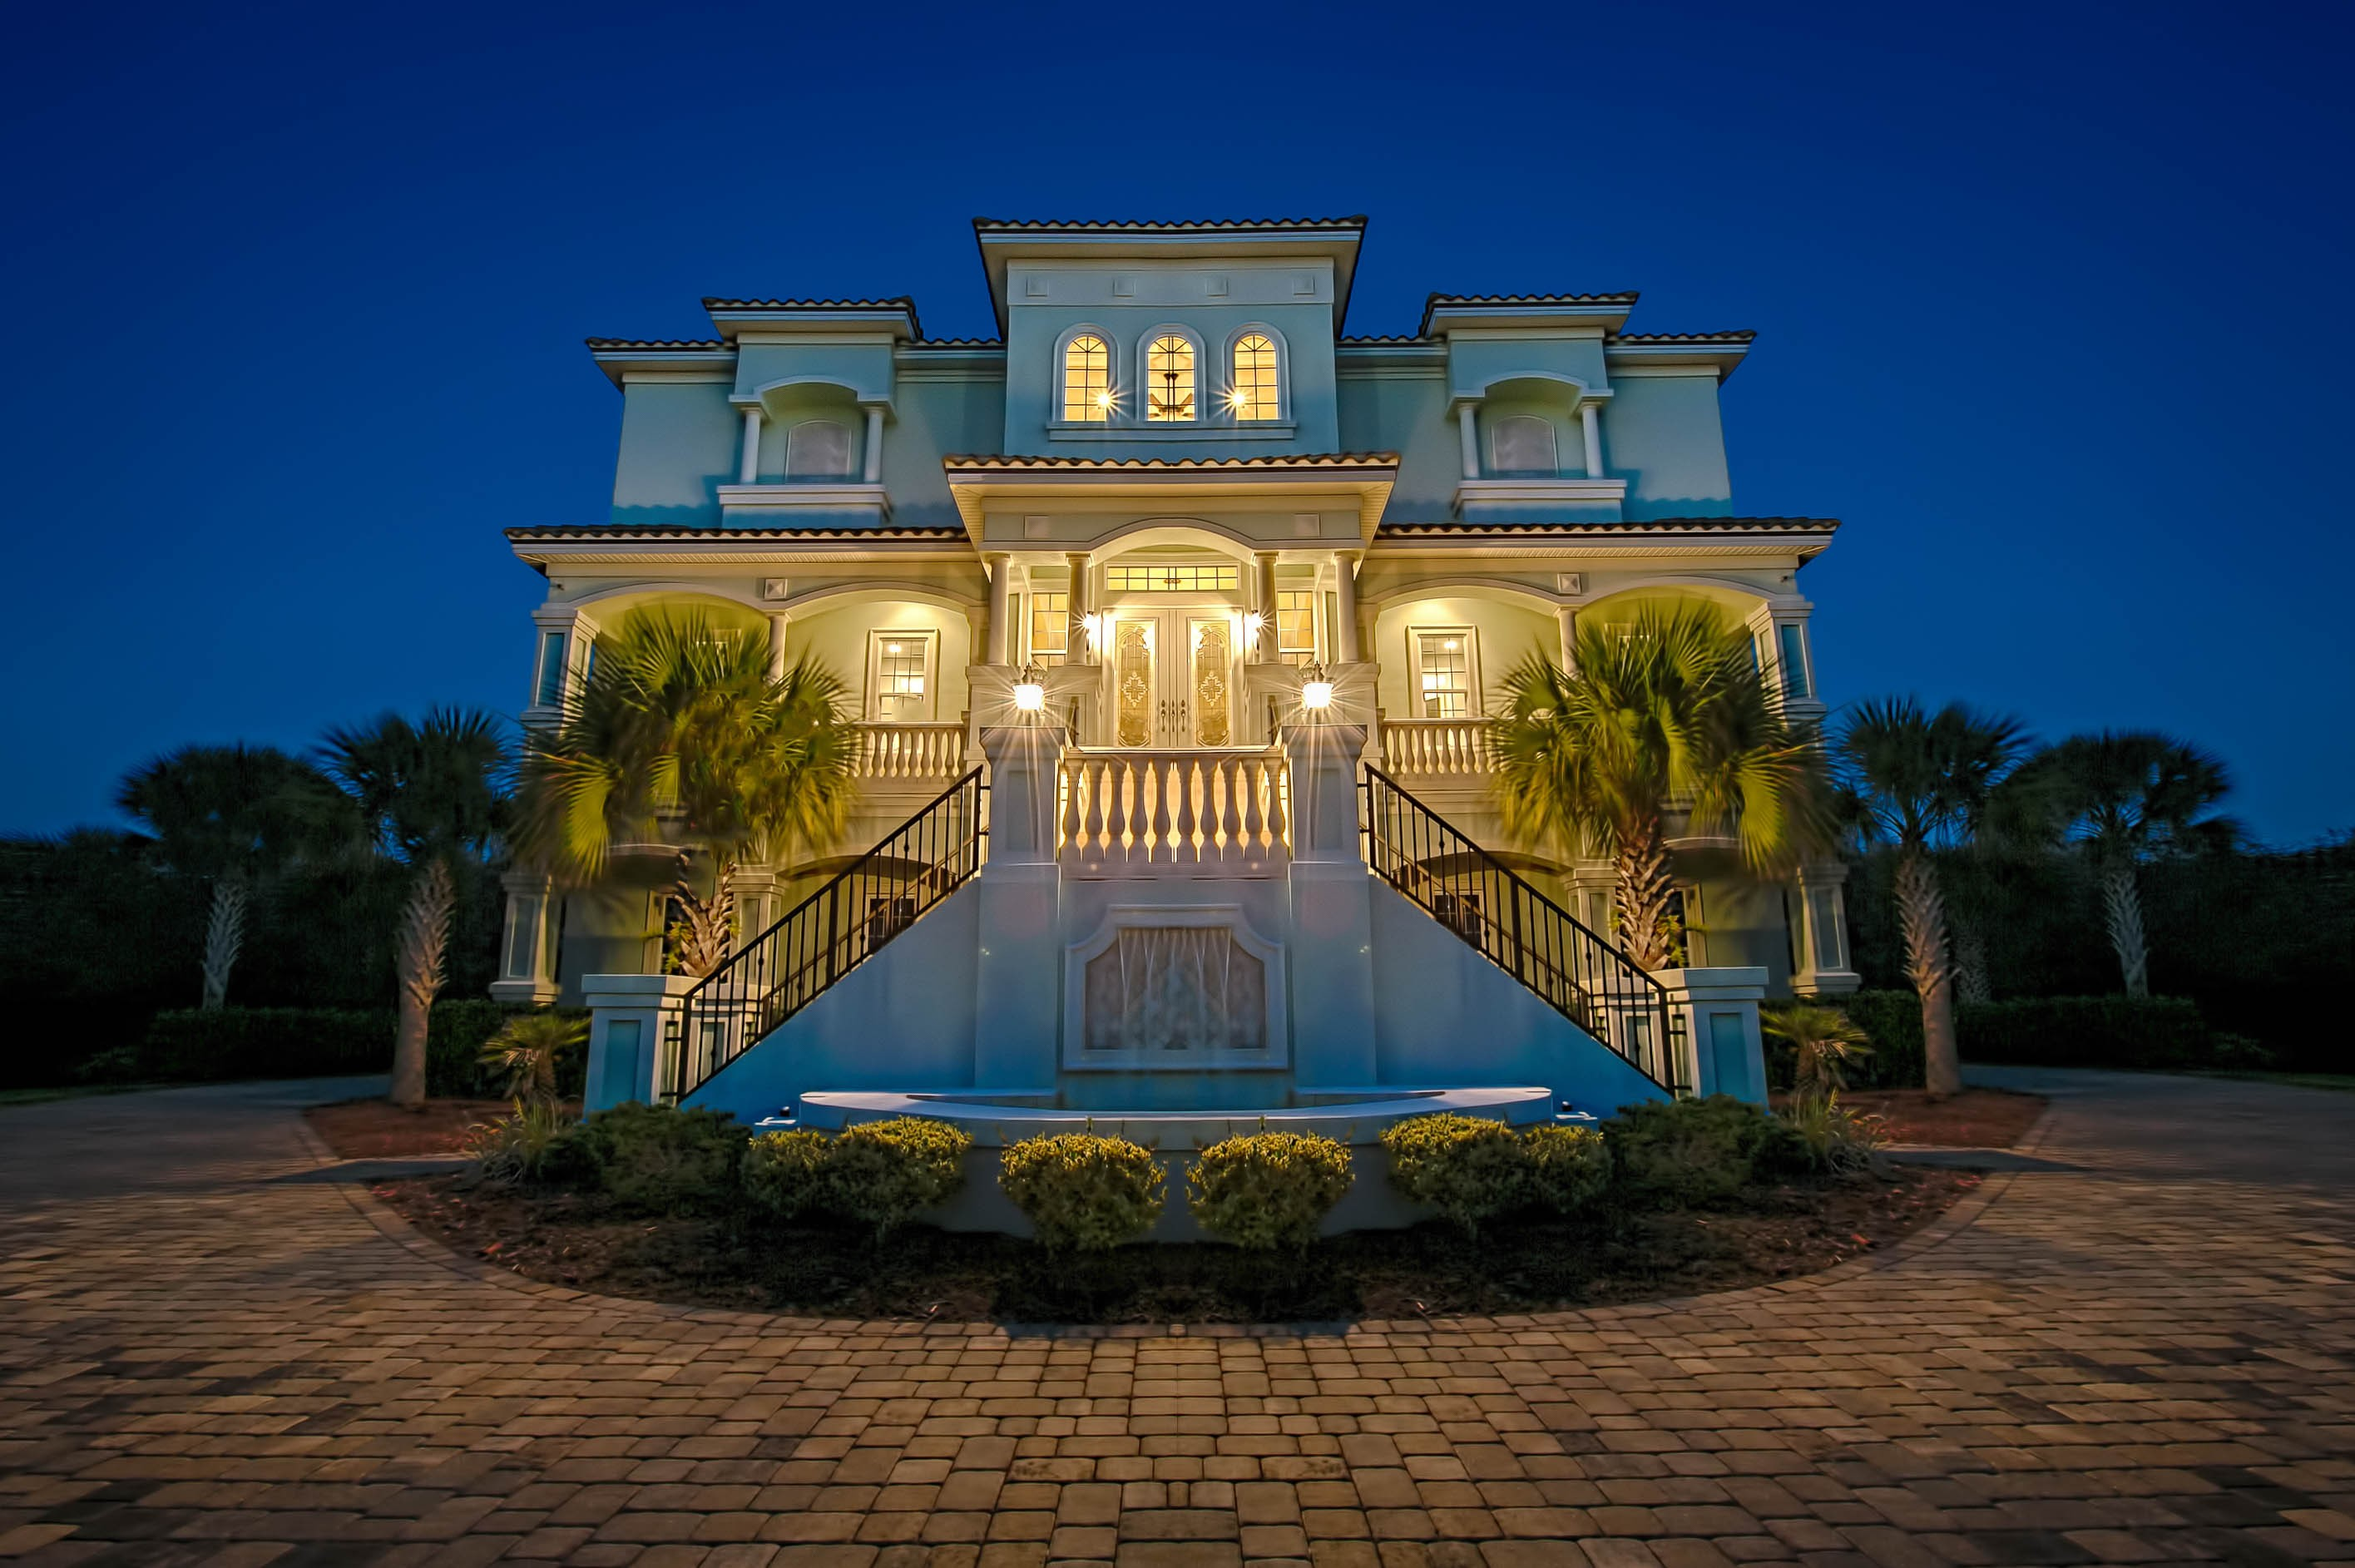 Single Family Home for Sale at Northshore Drive 61 Northshore Drive Palm Coast, Florida, 32137 United States